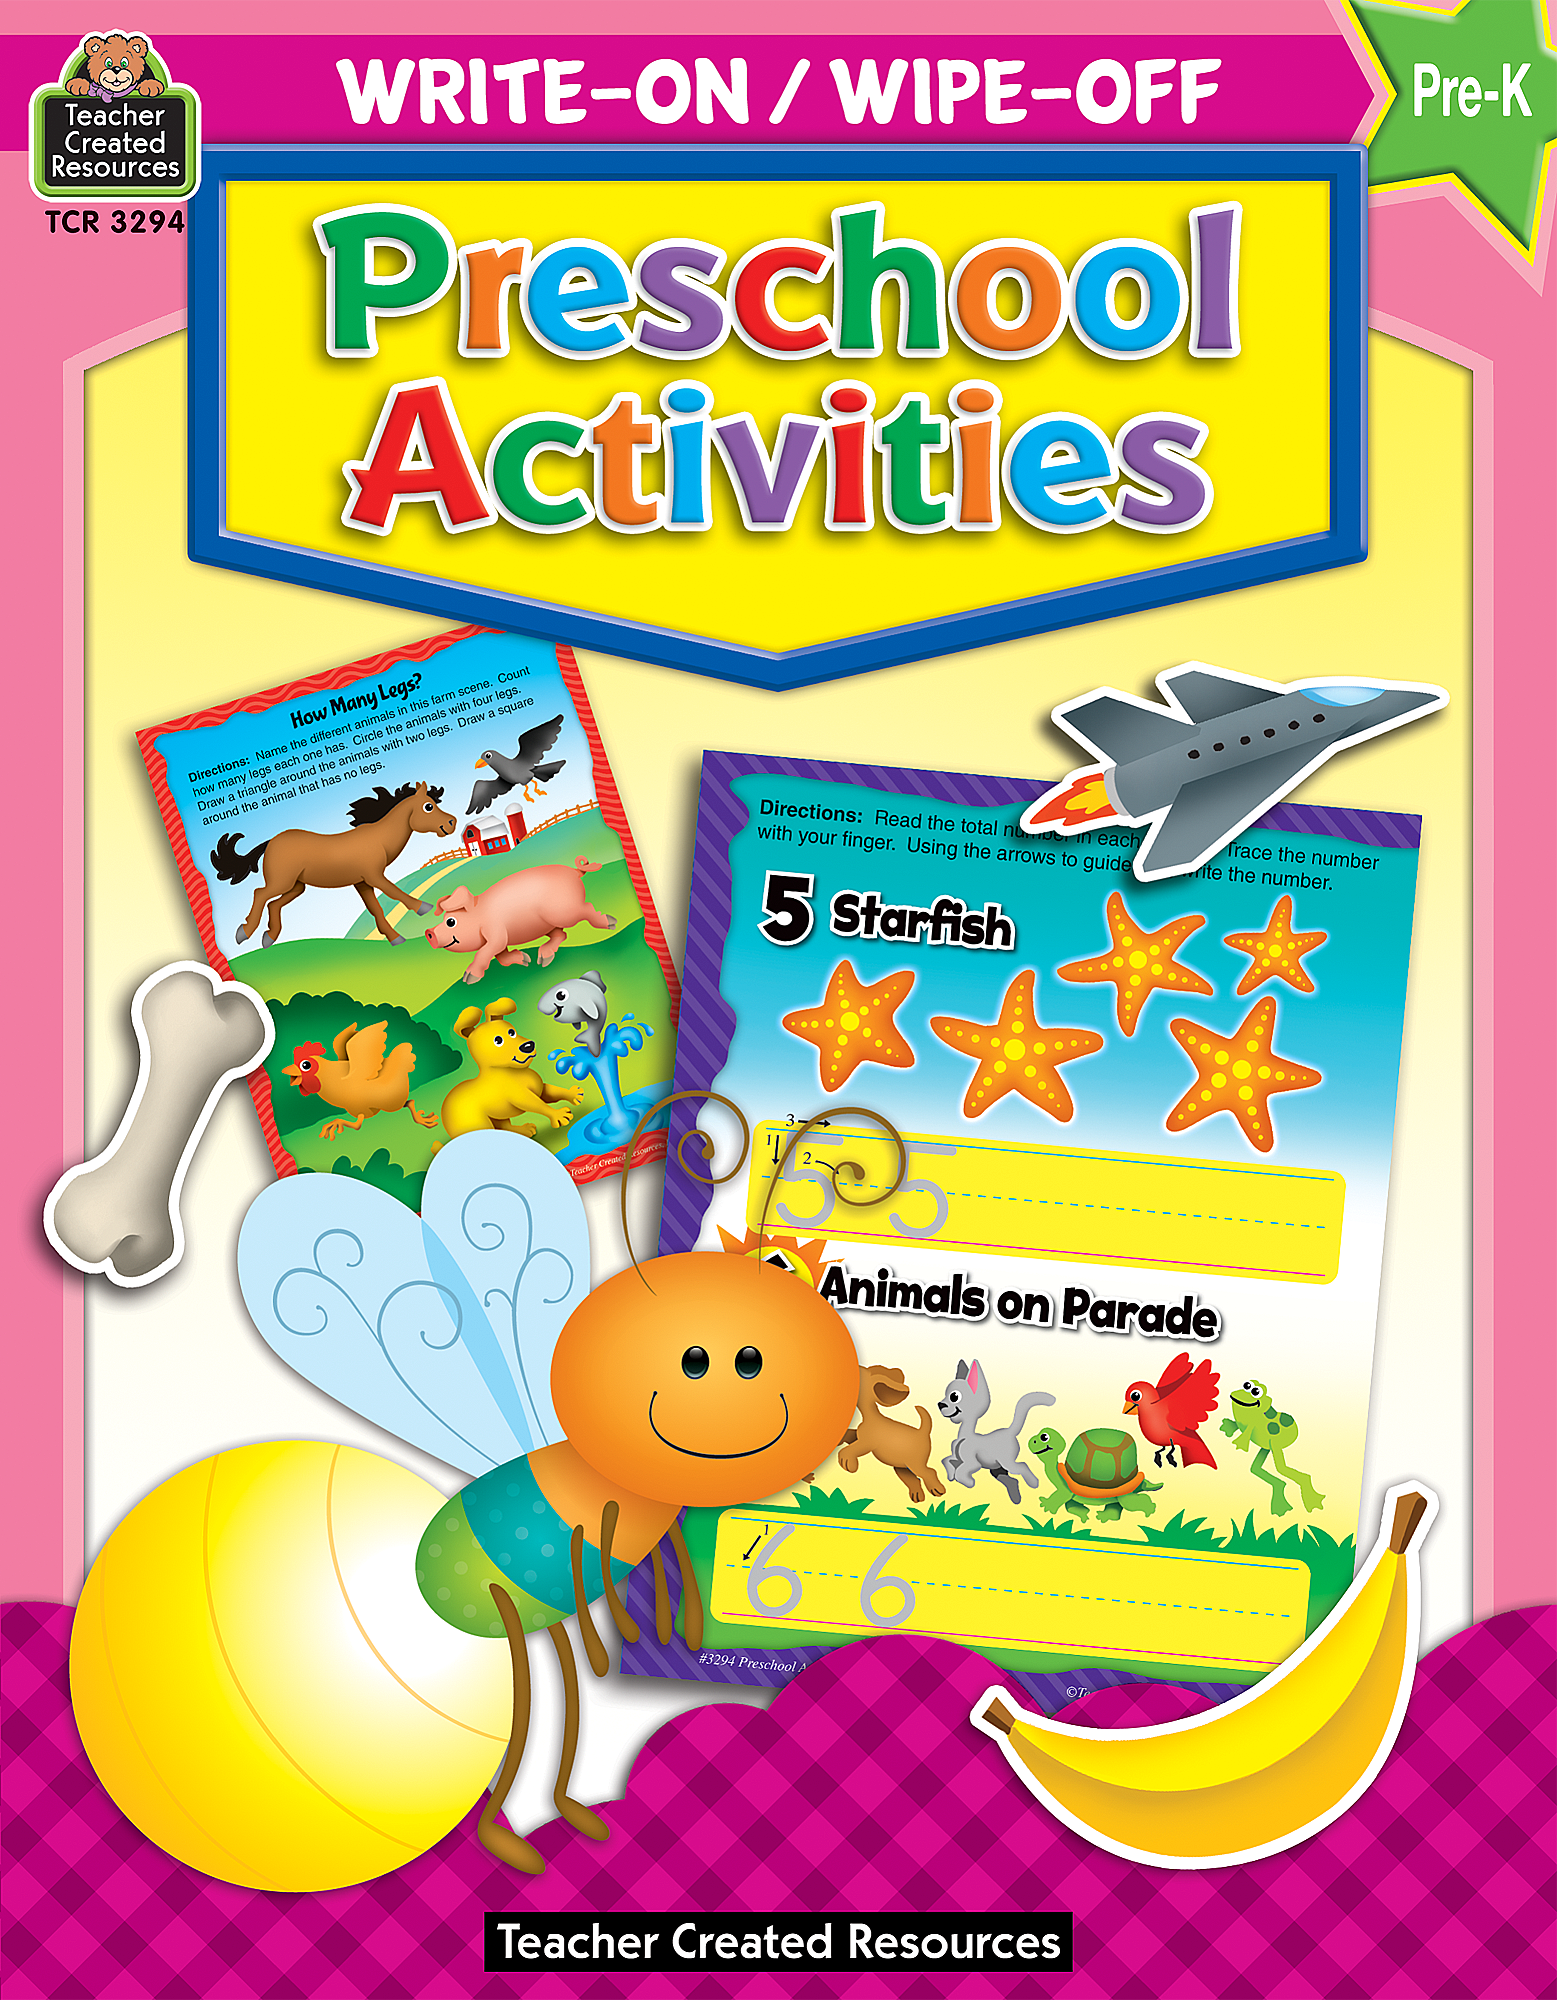 Write-On/Wipe-Off: Preschool Activities